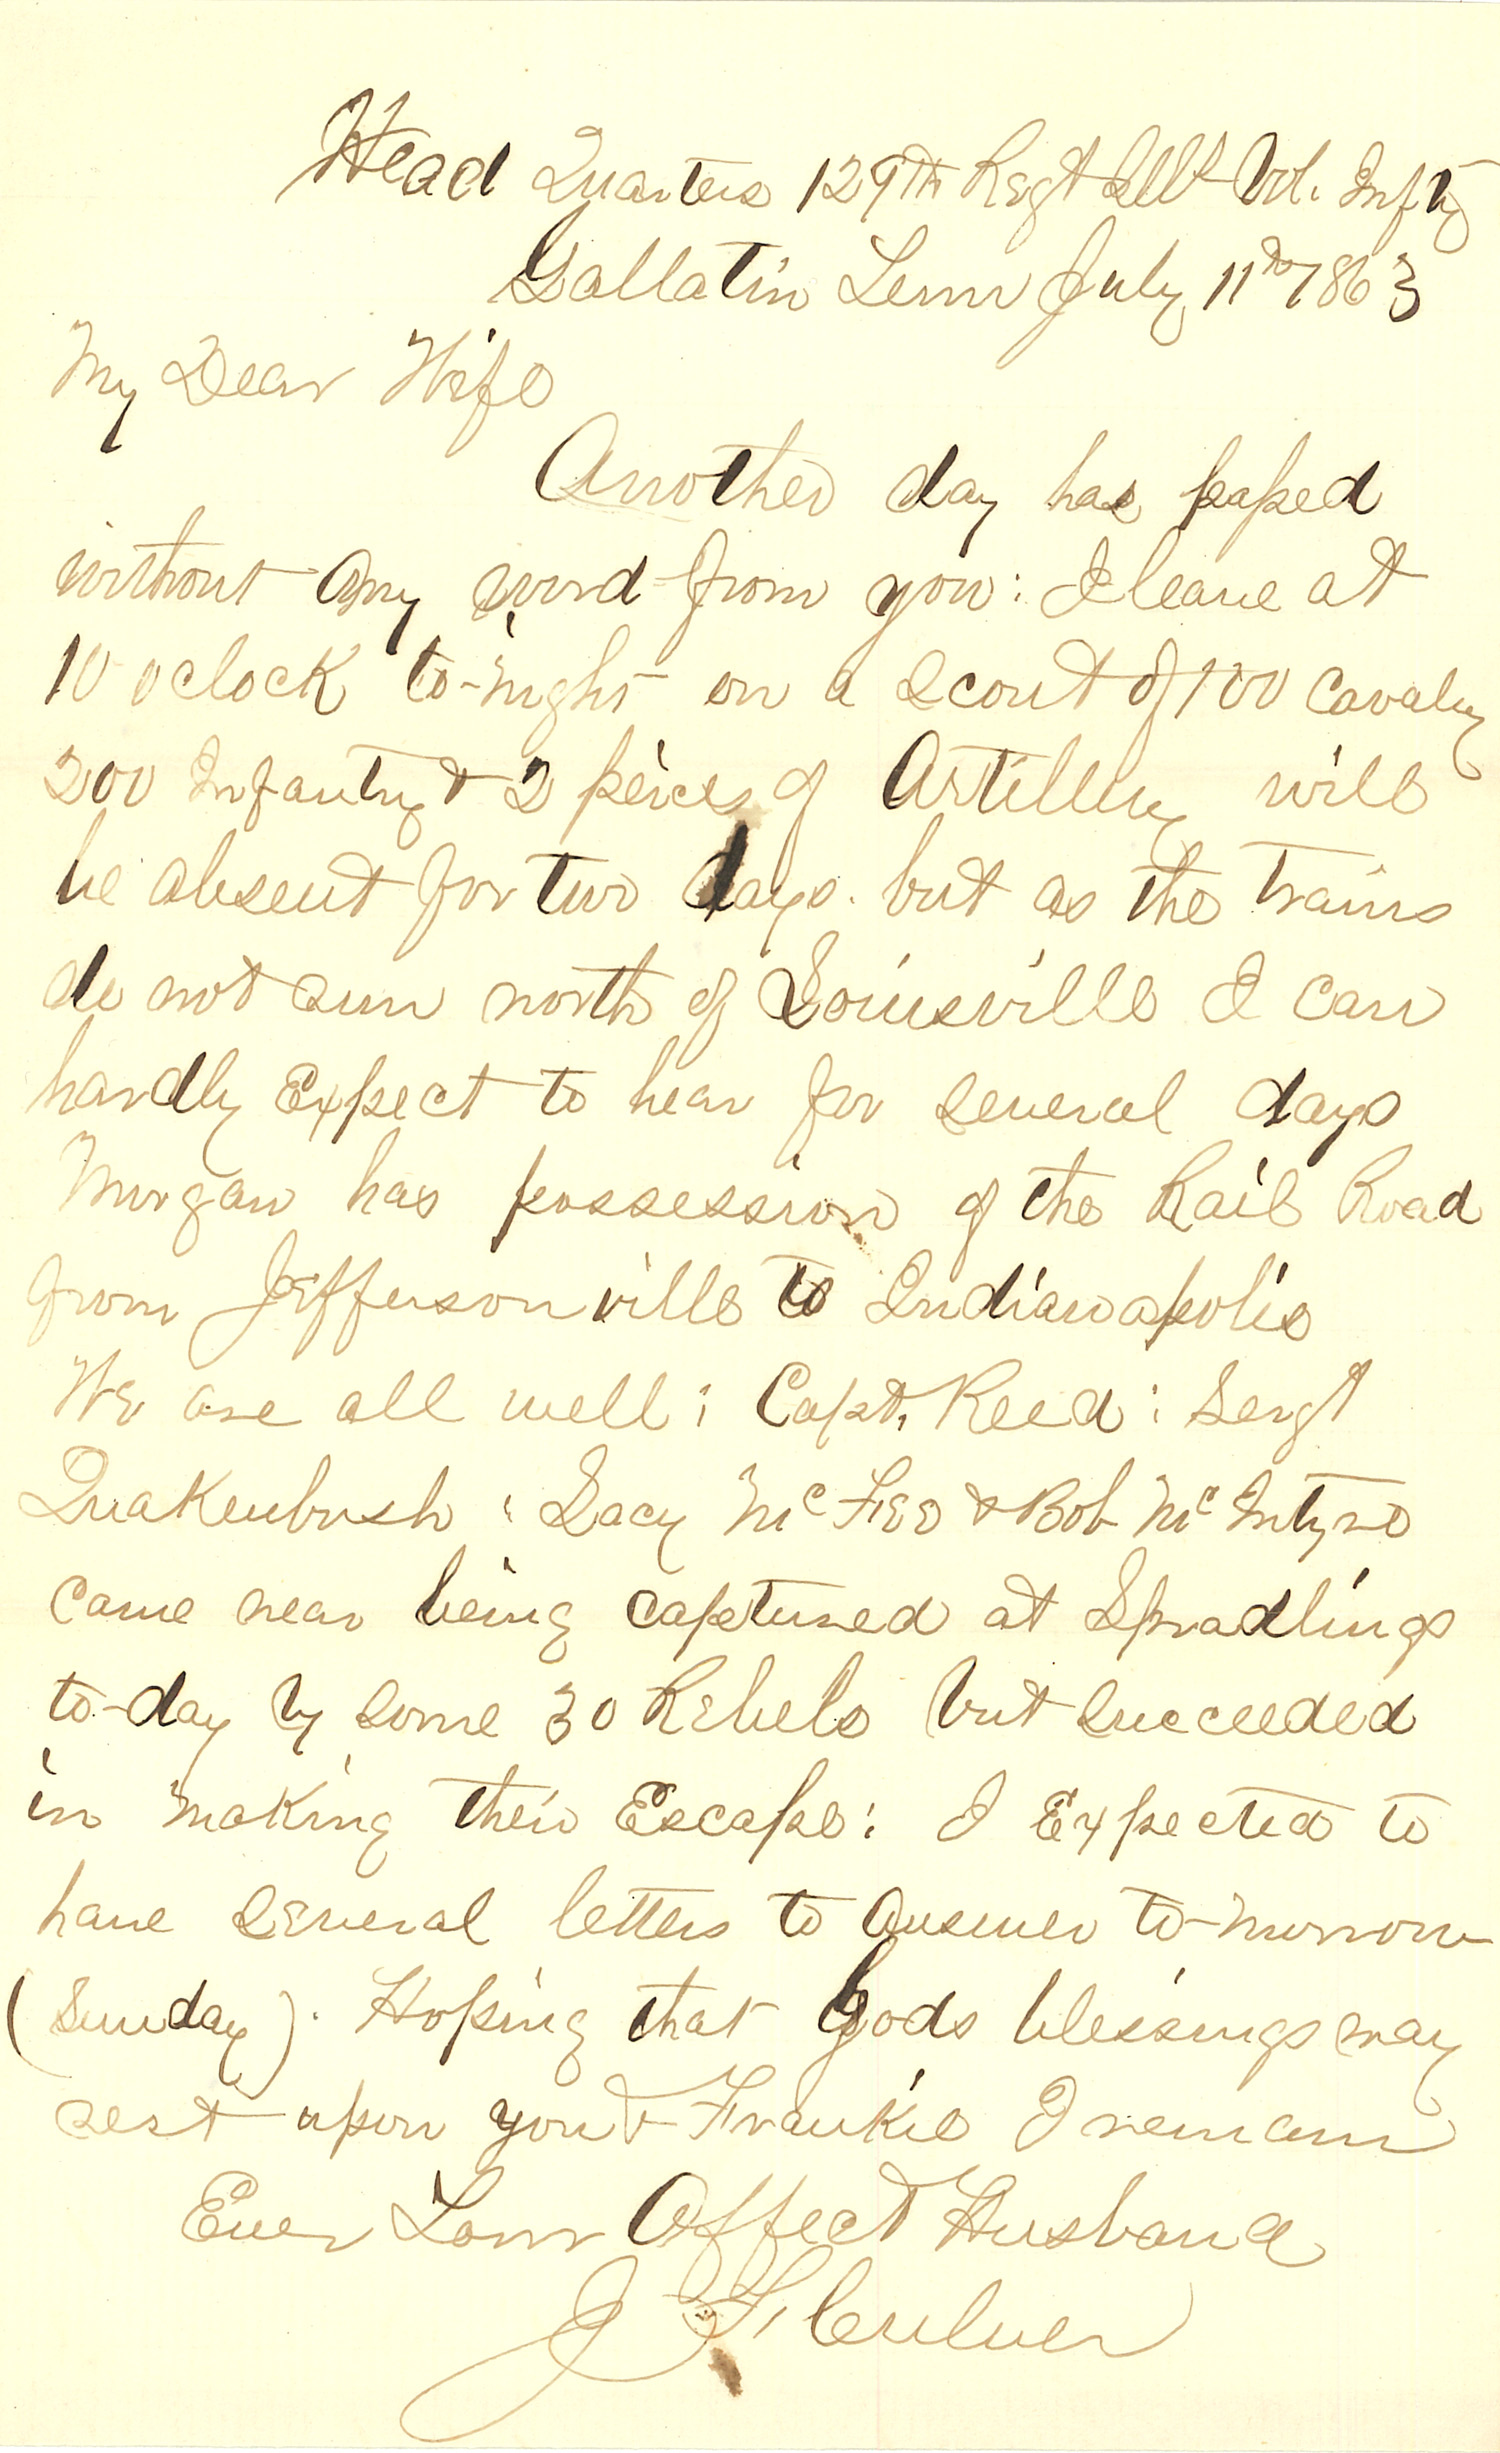 Joseph Culver Letter, July 11, 1863, Page 1